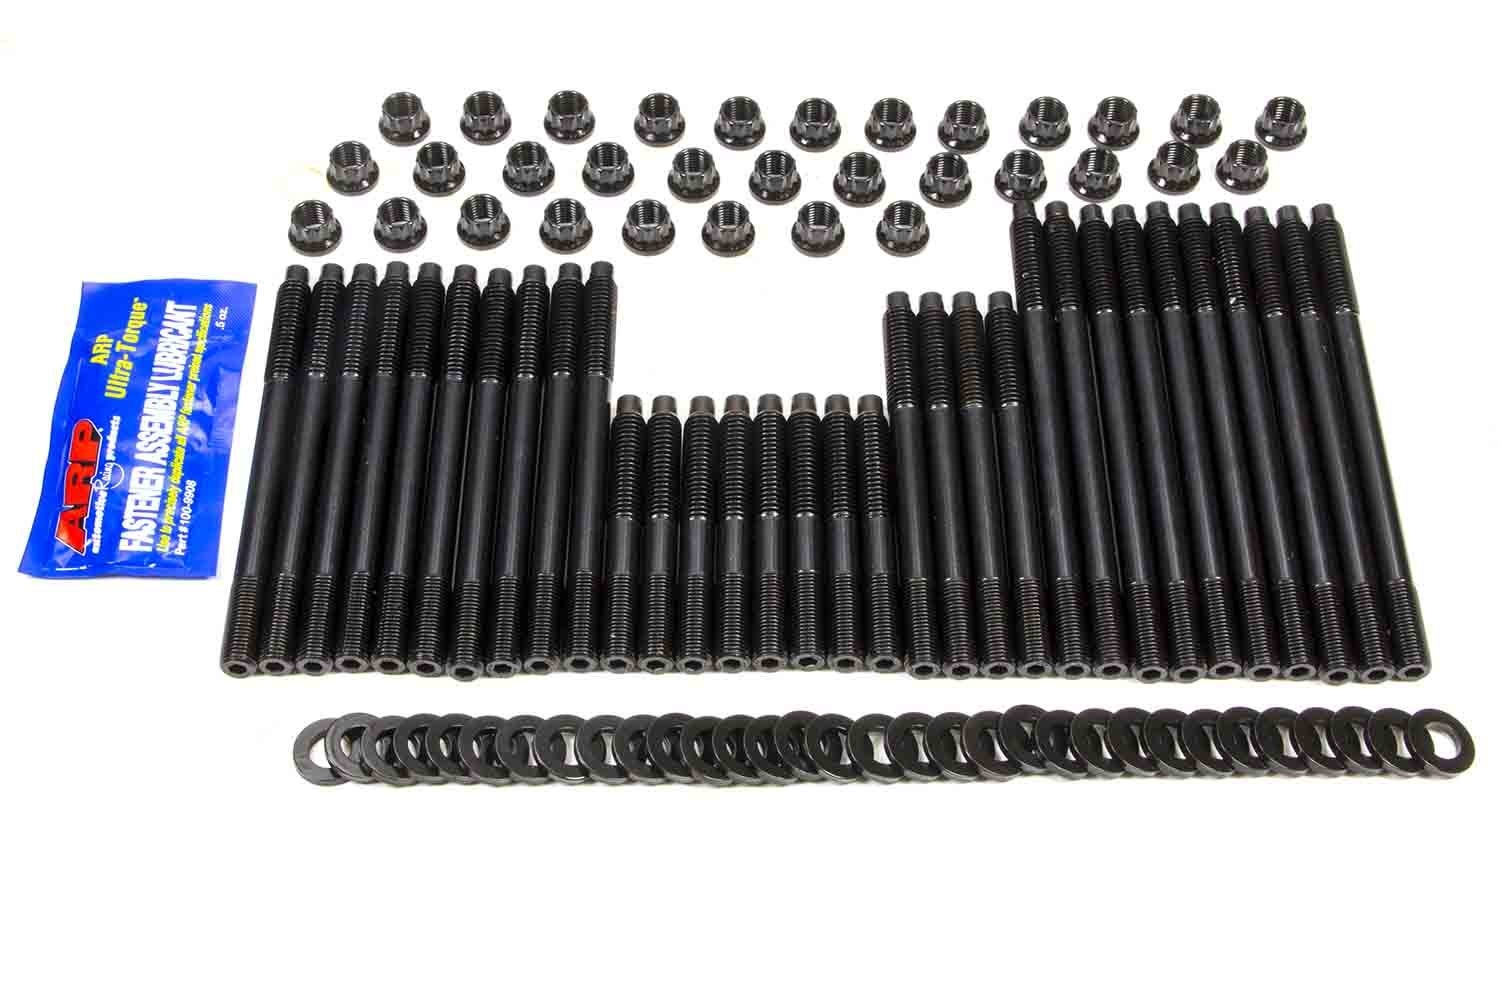 ARP 135-4302 Pro Series Black Oxide 12-Point Cylinder Head Stud Kit for Big Block Chevy